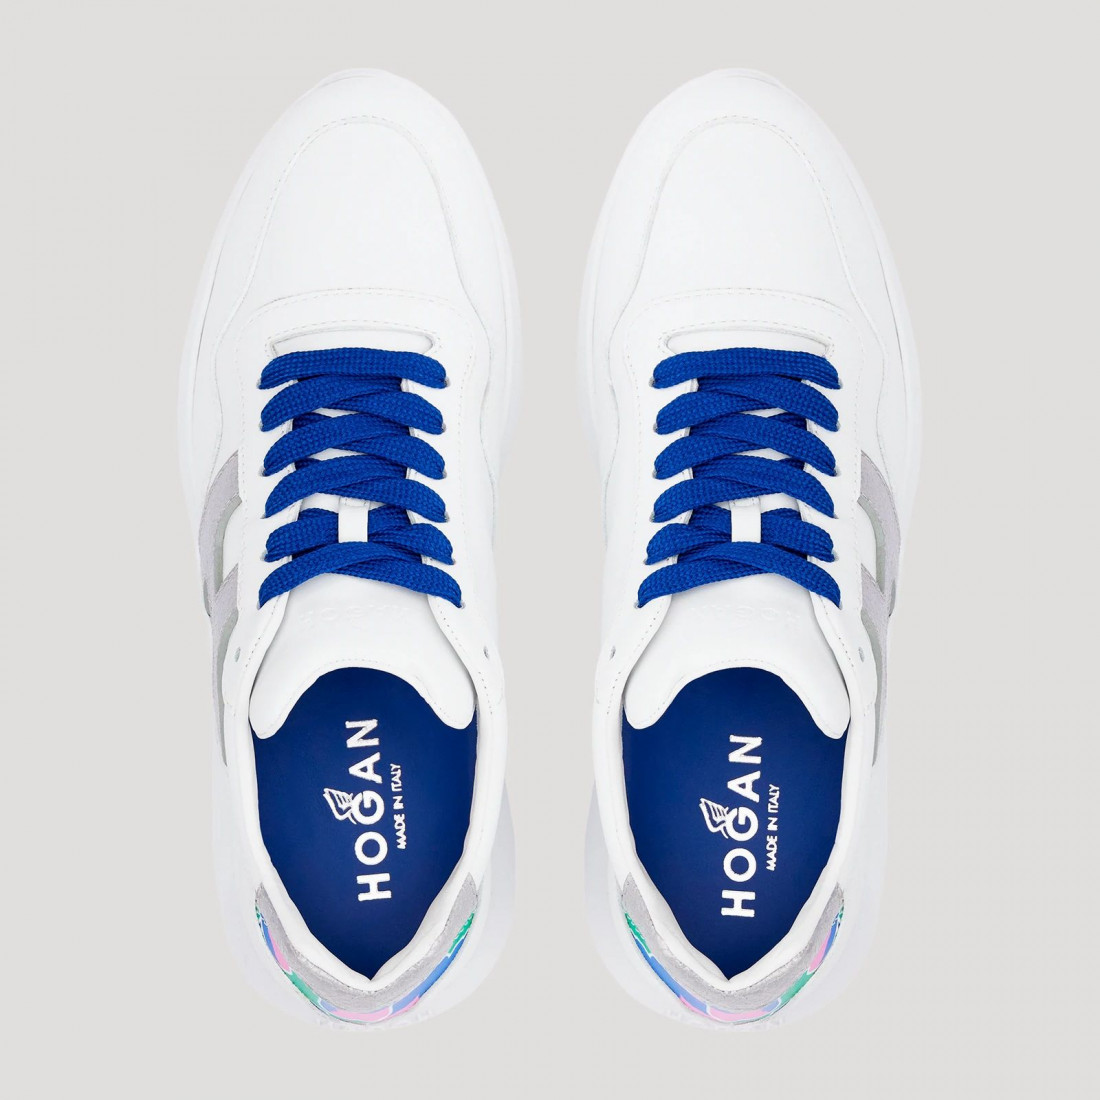 sneakers donna hogan hxw3710ap22pde0351 8118